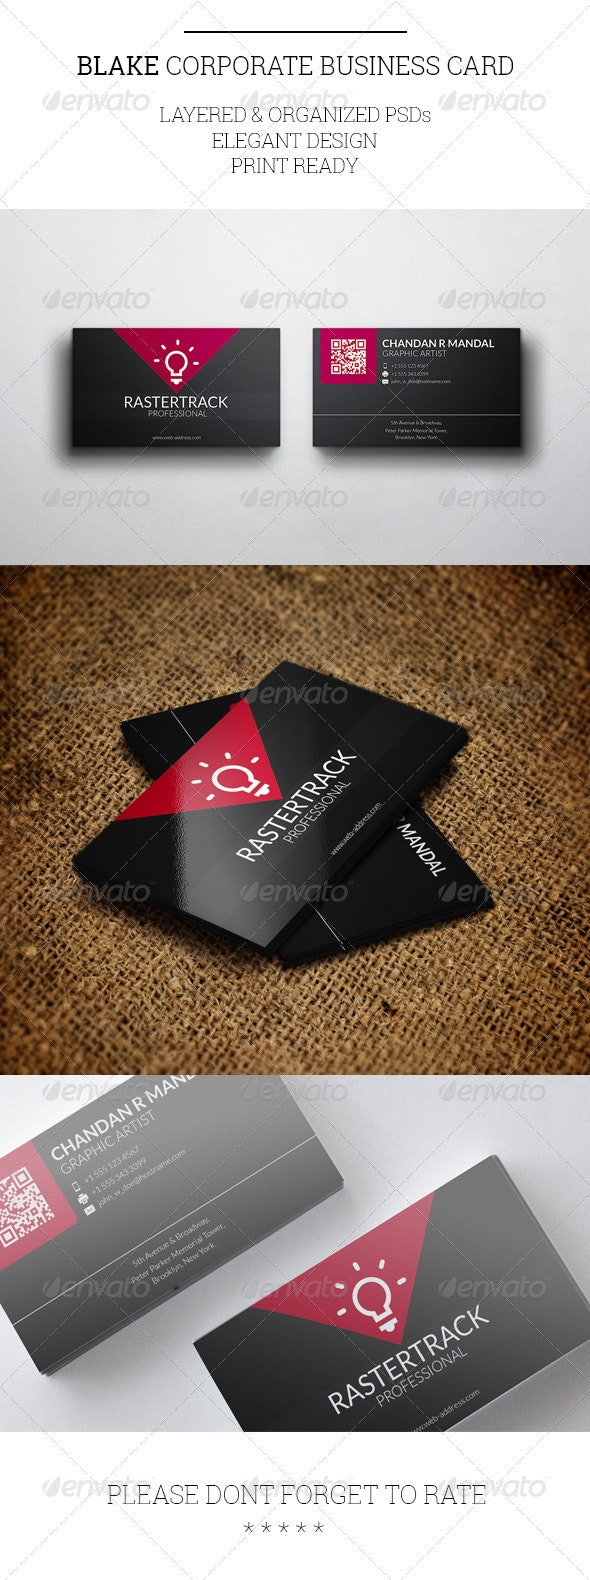 Blake Business Card Template - Corporate Business Cards